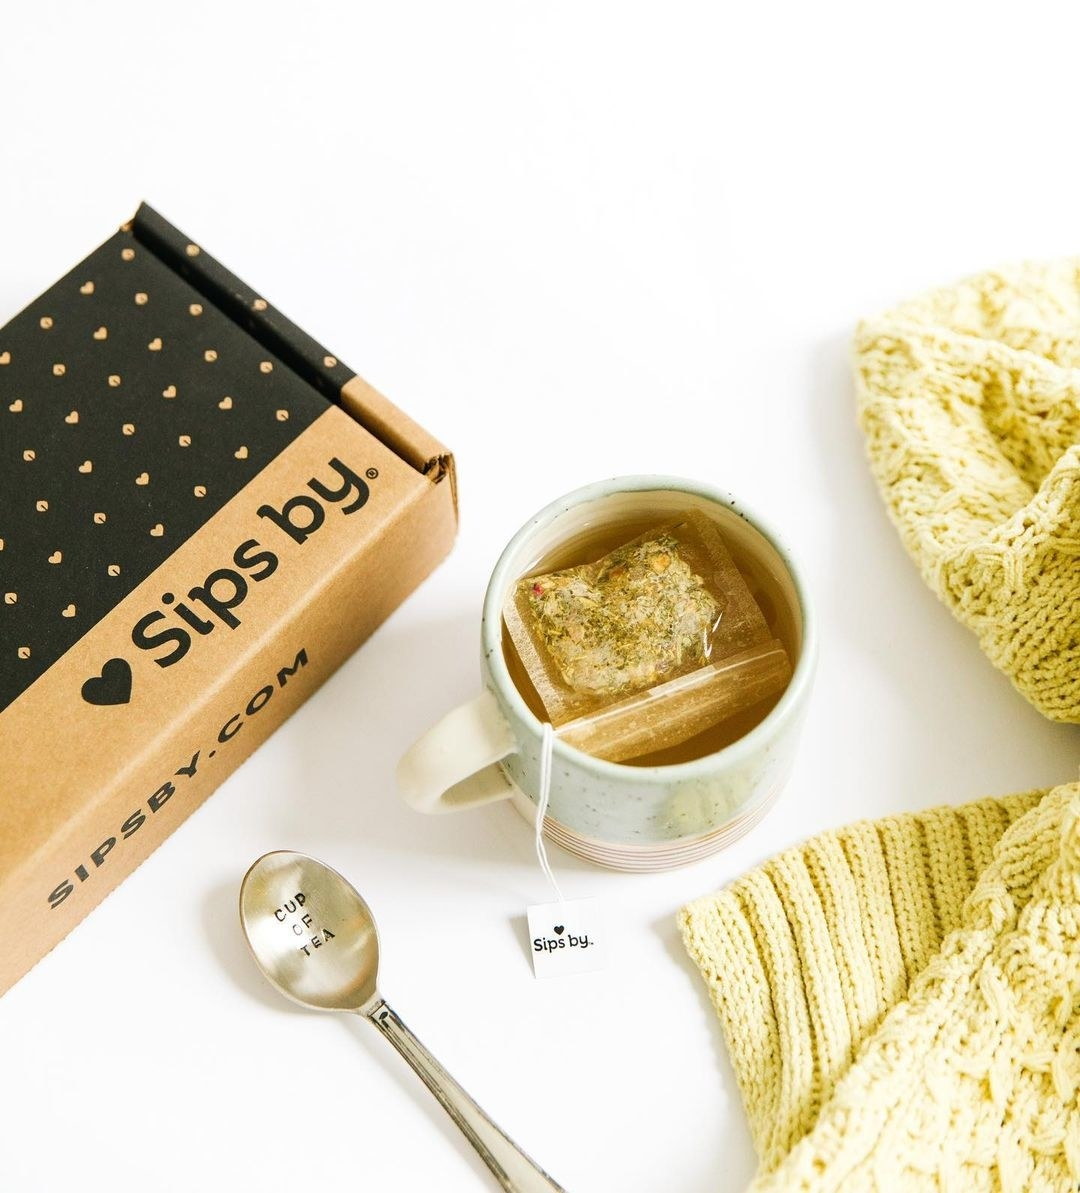 Sips By box styled next to a cup of tea